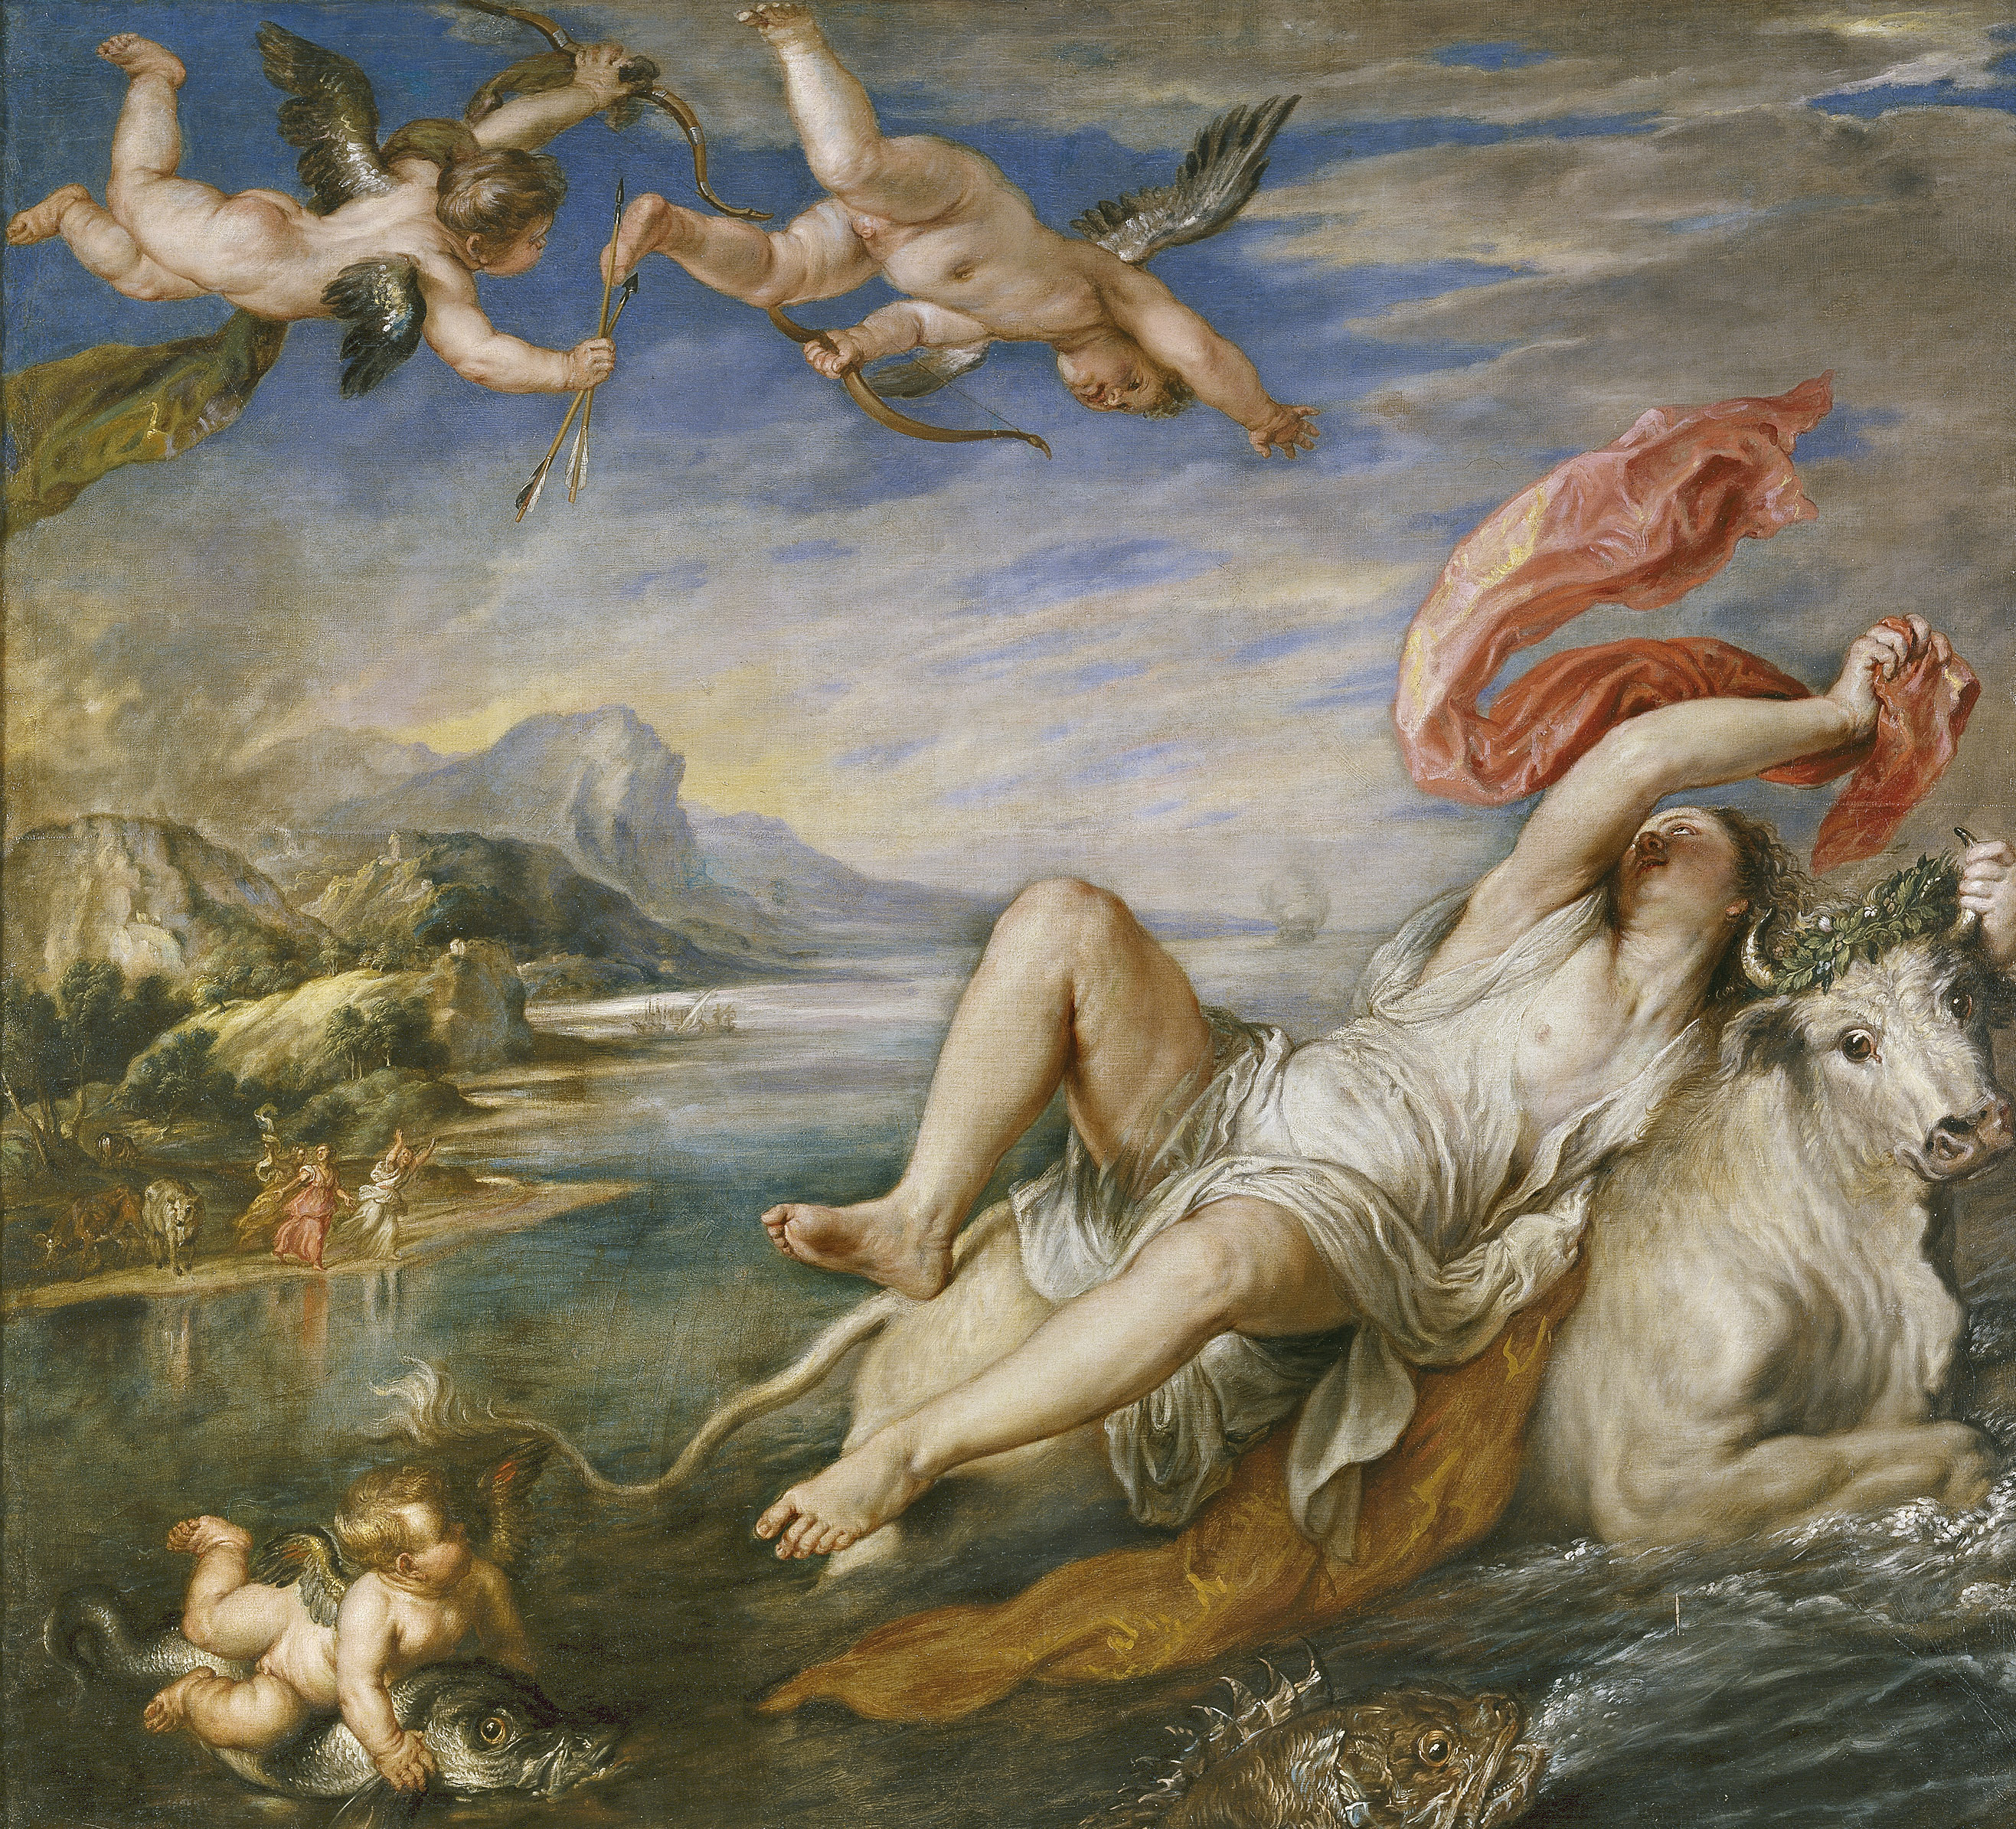 Rubens, The rape of Europa